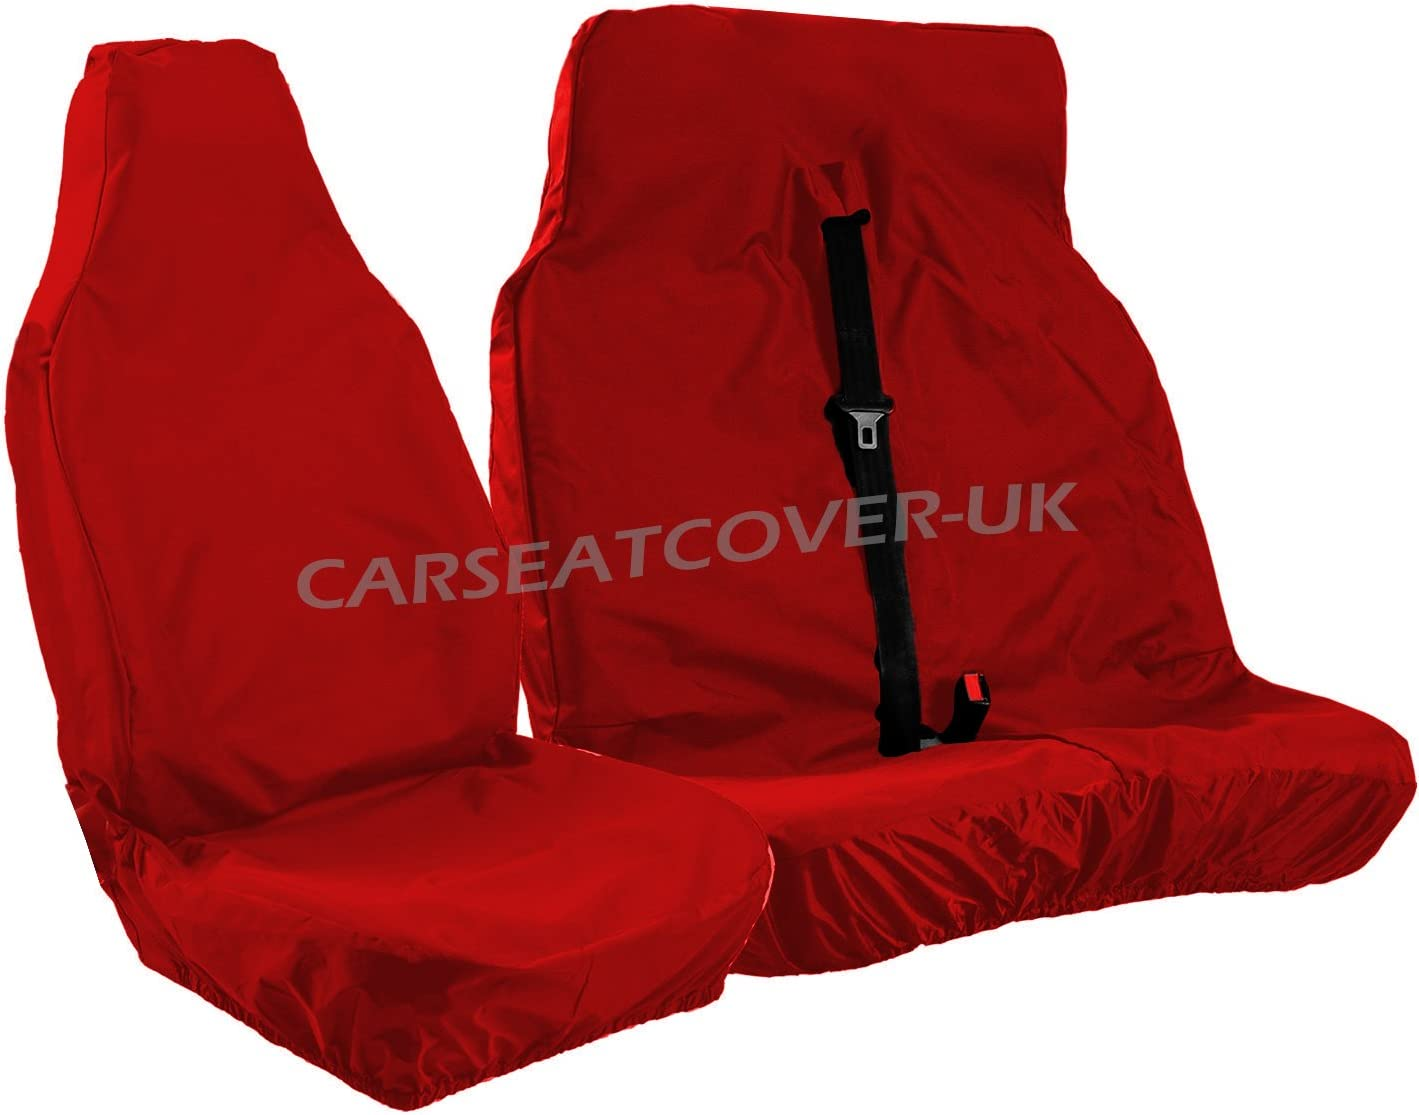 Fiat Ducato 2006 Crew Cab Van Tailored /& Waterproof Black 7-Seater Seat Covers